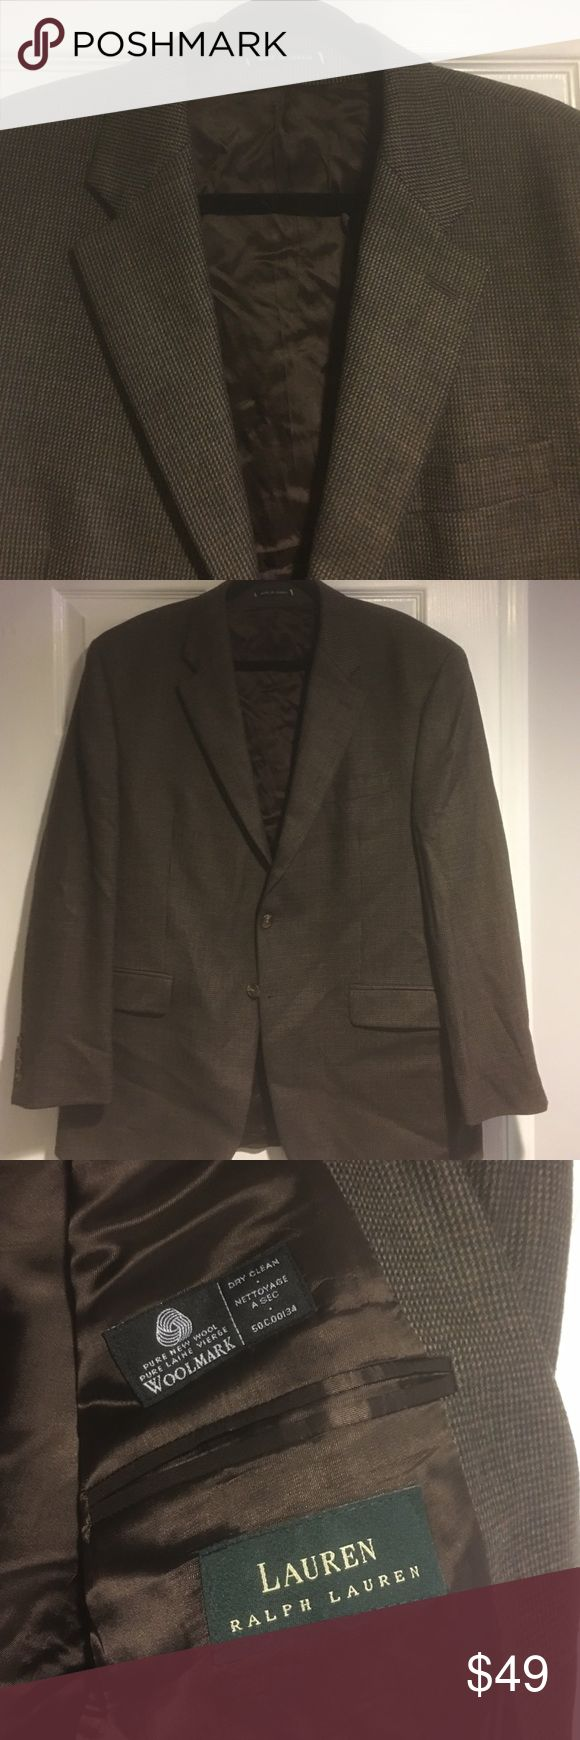 *Suit SALE* Lauren by RL 100 lambs wool 44R Very sharp & well made in Canada. Dark brown. Save huge off retail. Lauren Ralph Lauren Suits & Blazers Sport Coats & Blazers